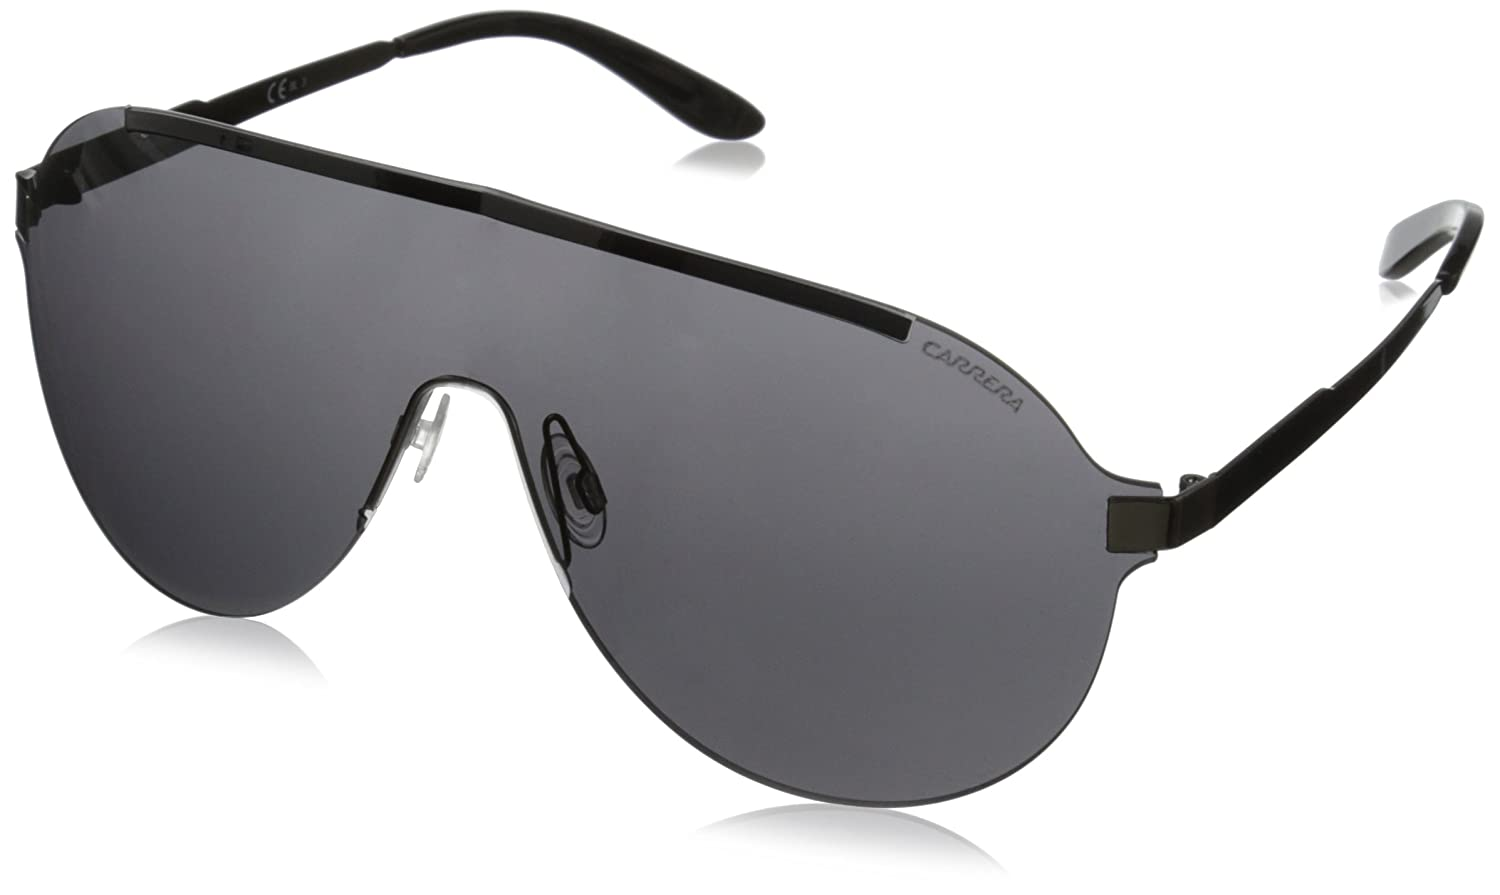 Amazon.com: Carrera CA92S Aviator Sunglasses, Black Bronze, 99 mm: Clothing